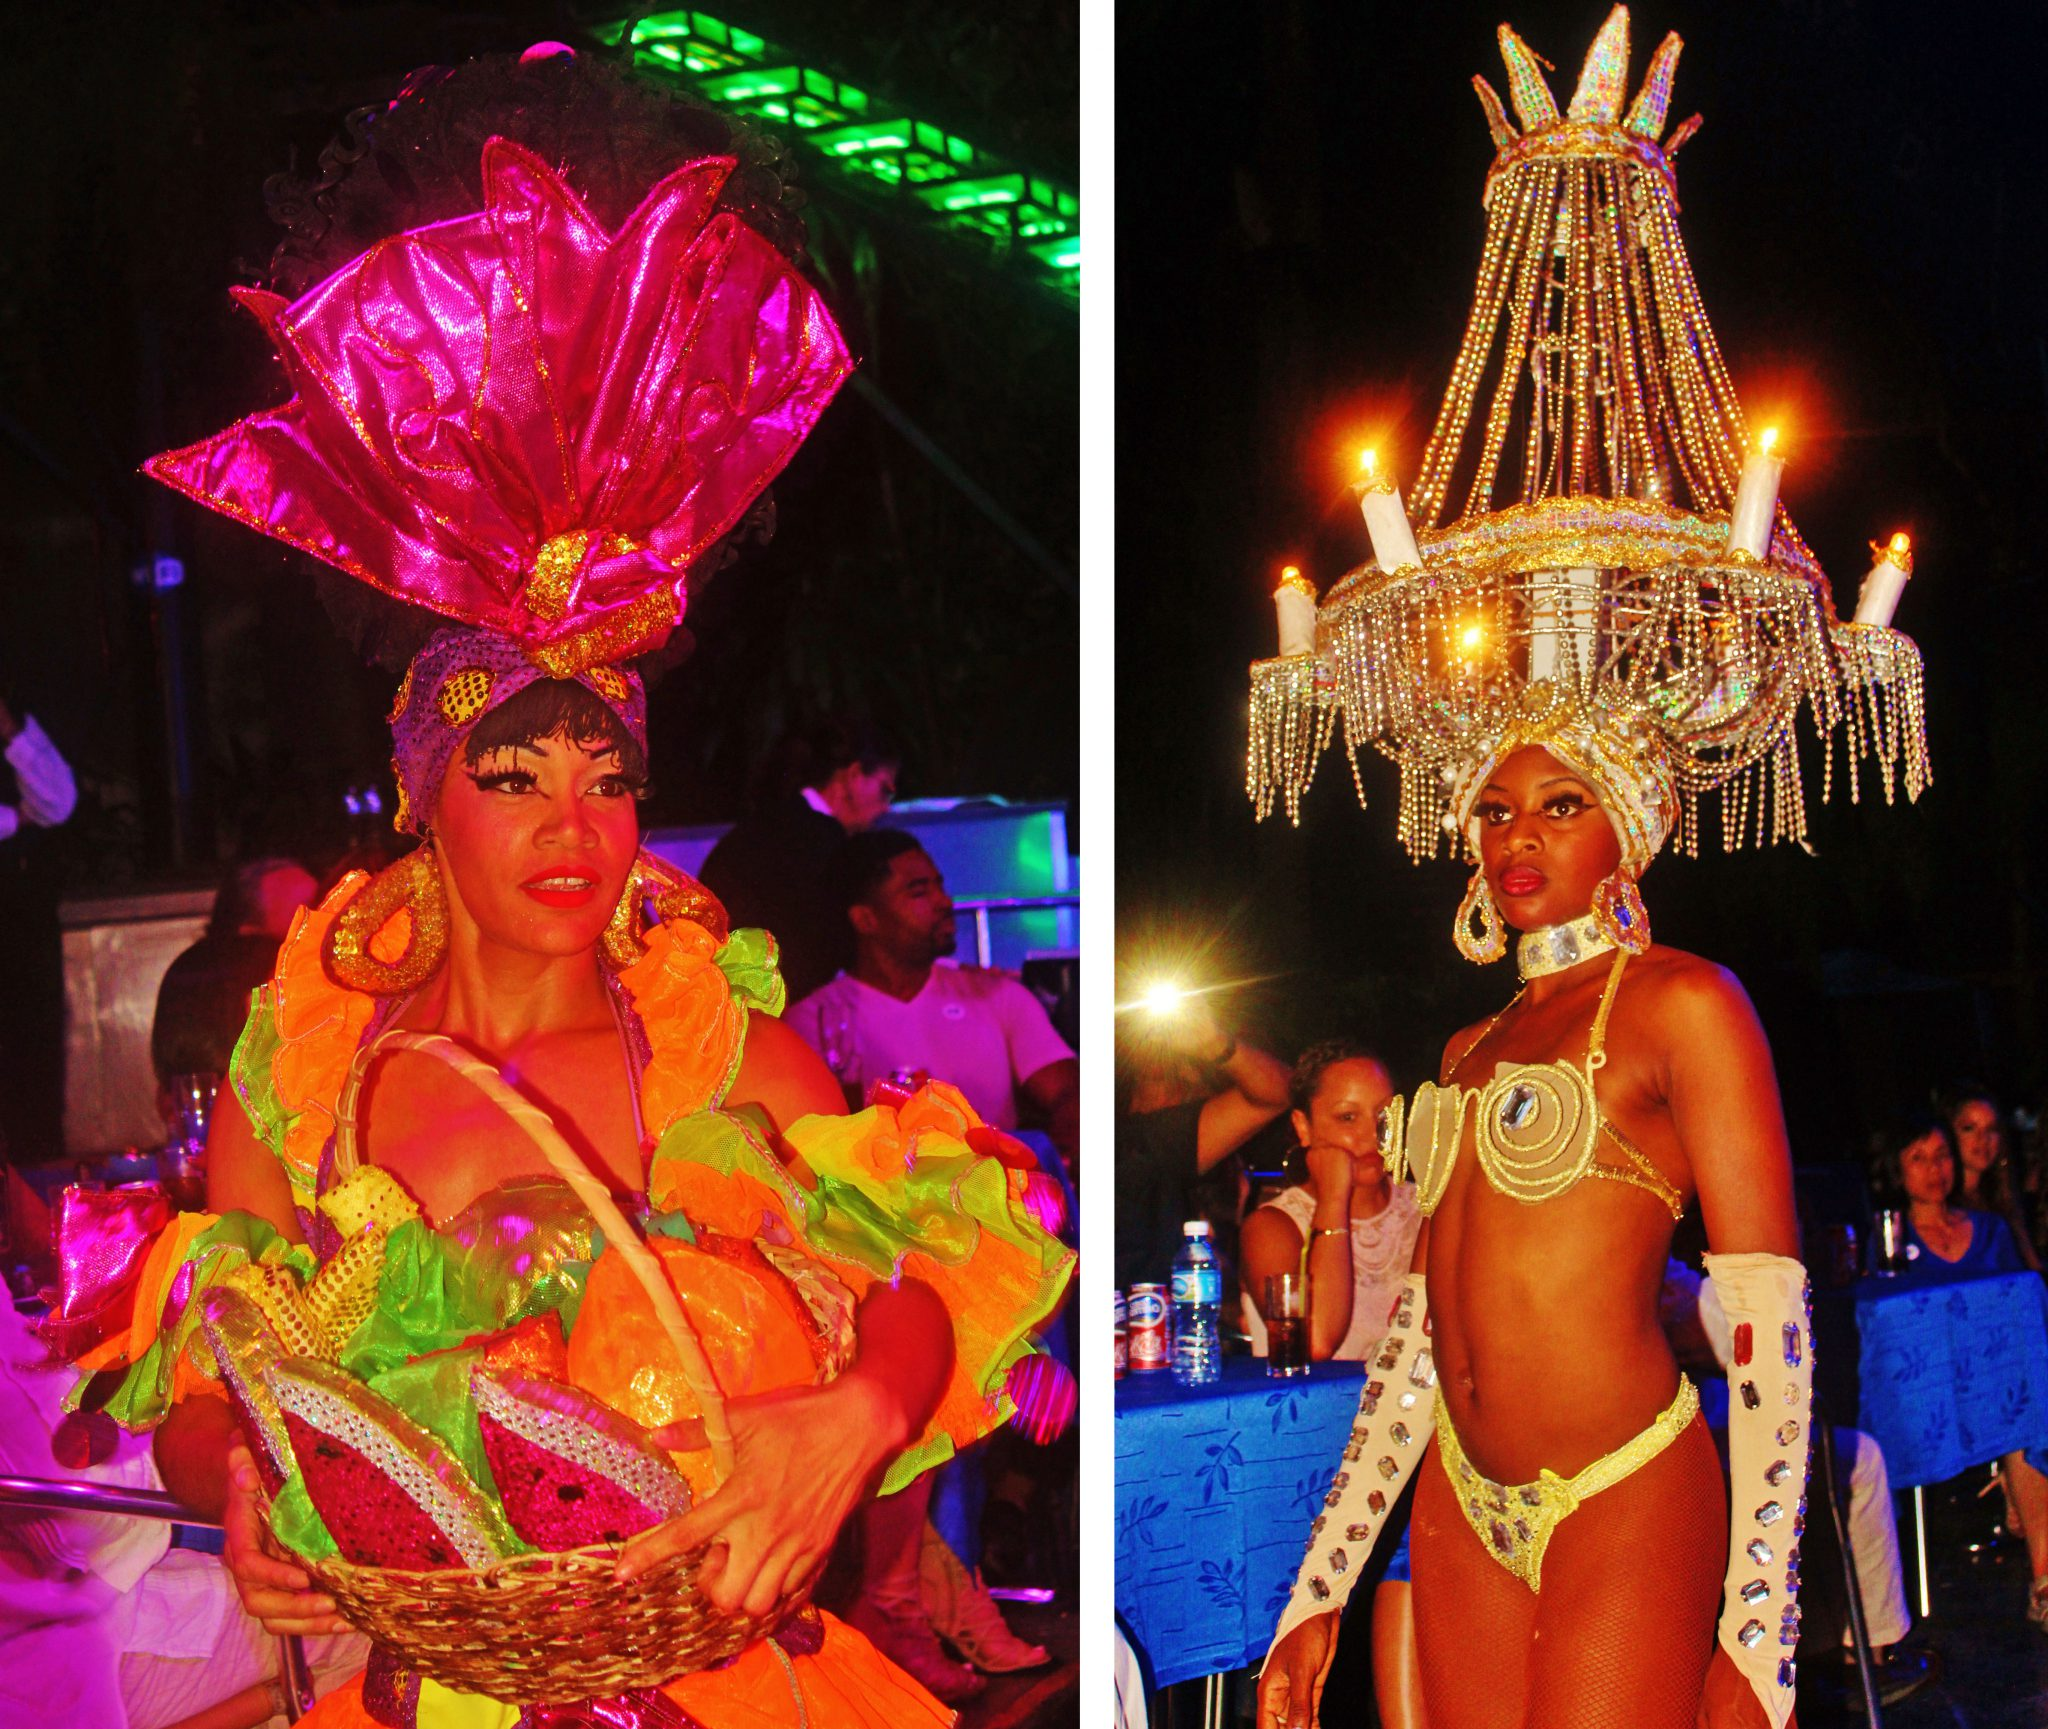 From XMAS bouquets and fruit baskets to chandeliers, the Tropicana dancers provided guests with an up-close-and-personal showcase of their exotic head wear and costumes.